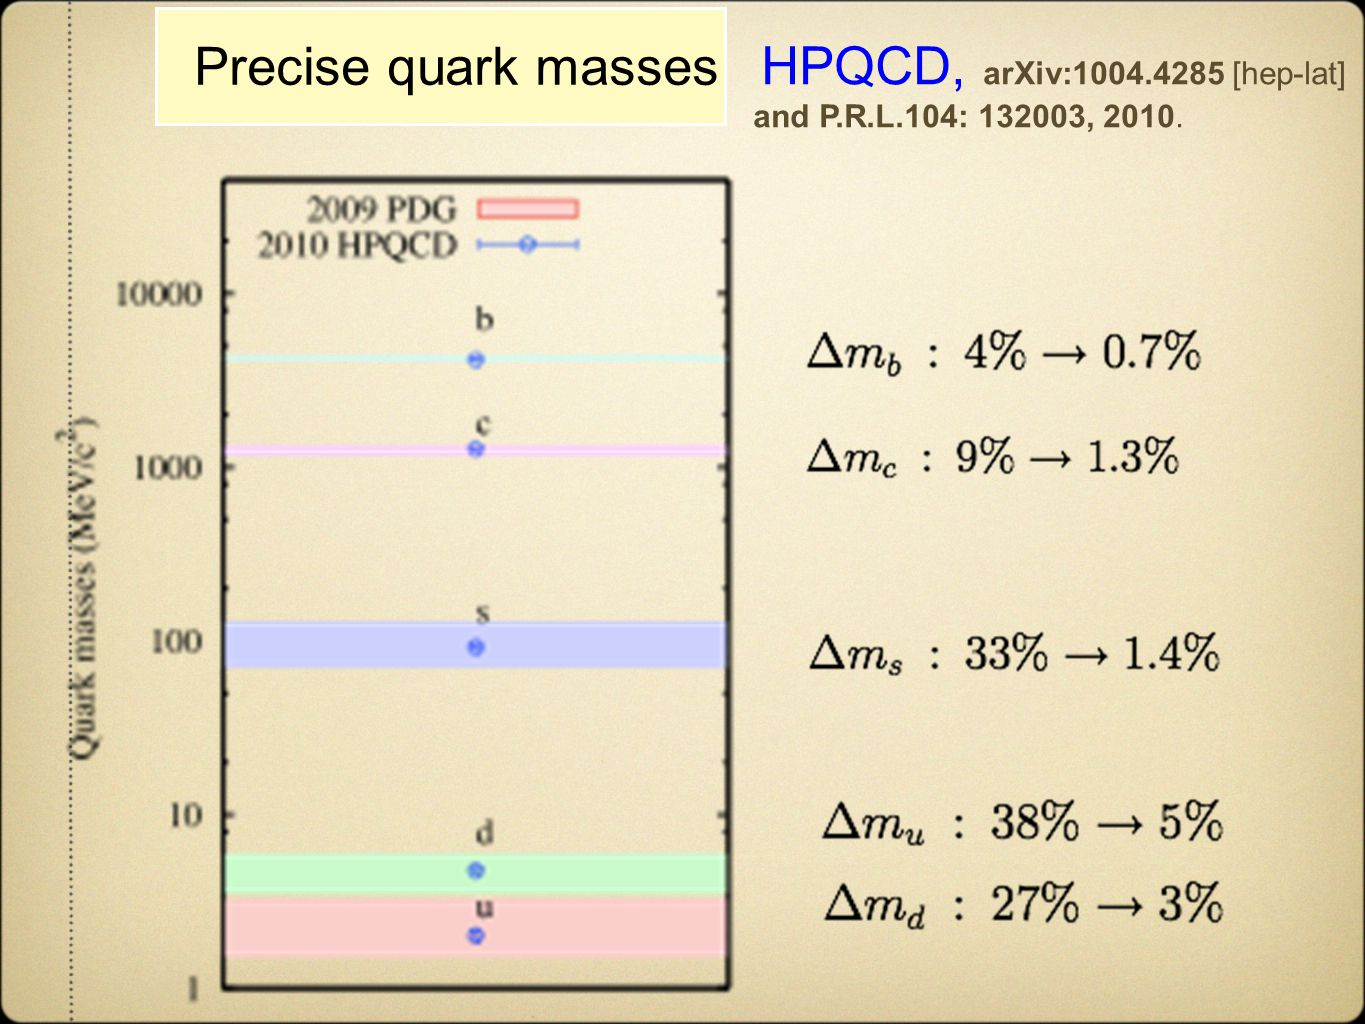 HPQCD, arXiv:1004.4285 [hep-lat] and P.R.L.104: 132003, 2010. Precise quark masses